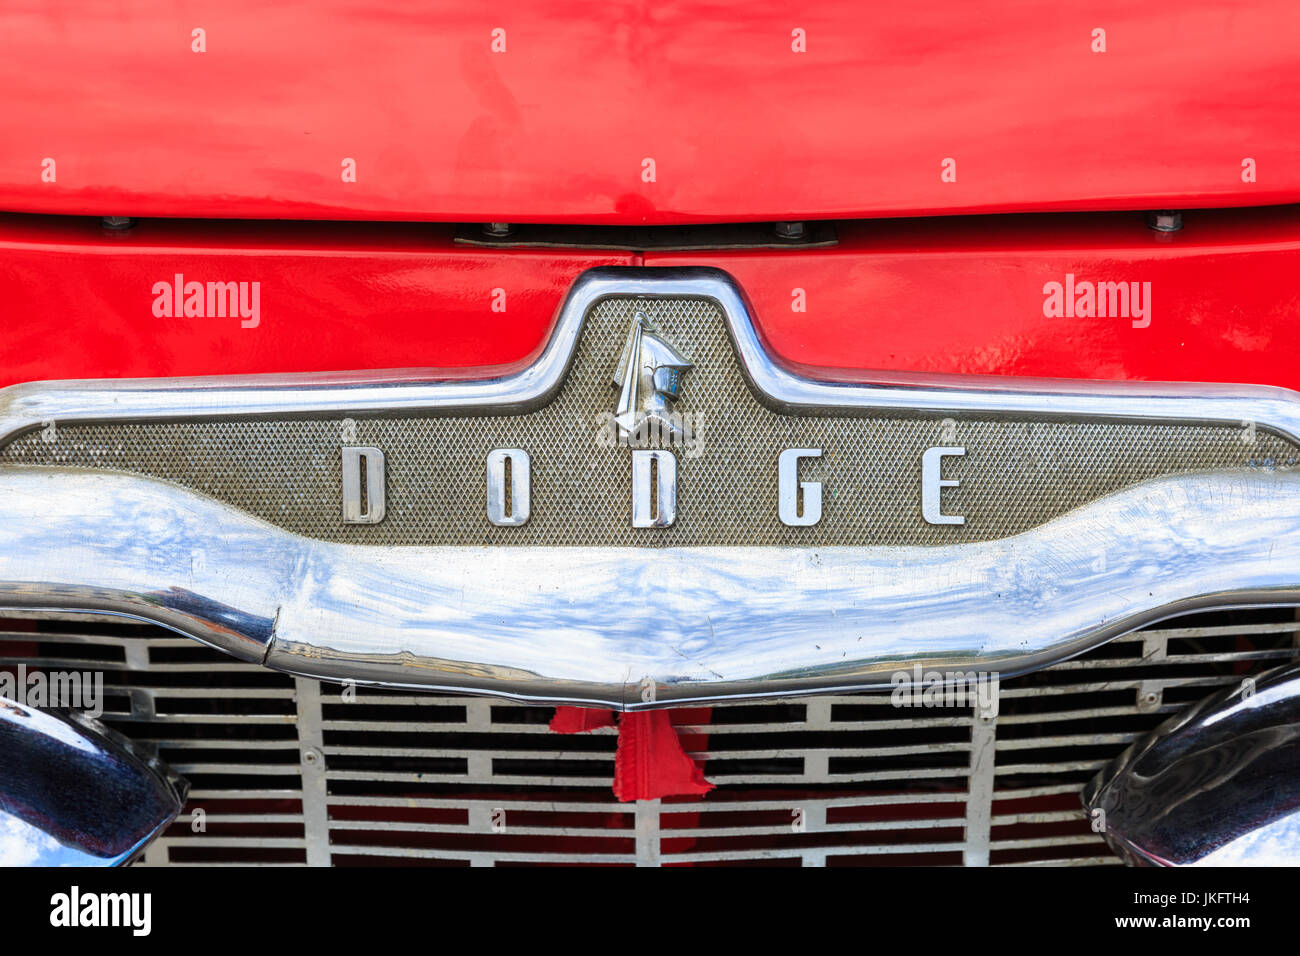 Dodge Logo High Resolution Stock Photography And Images Alamy